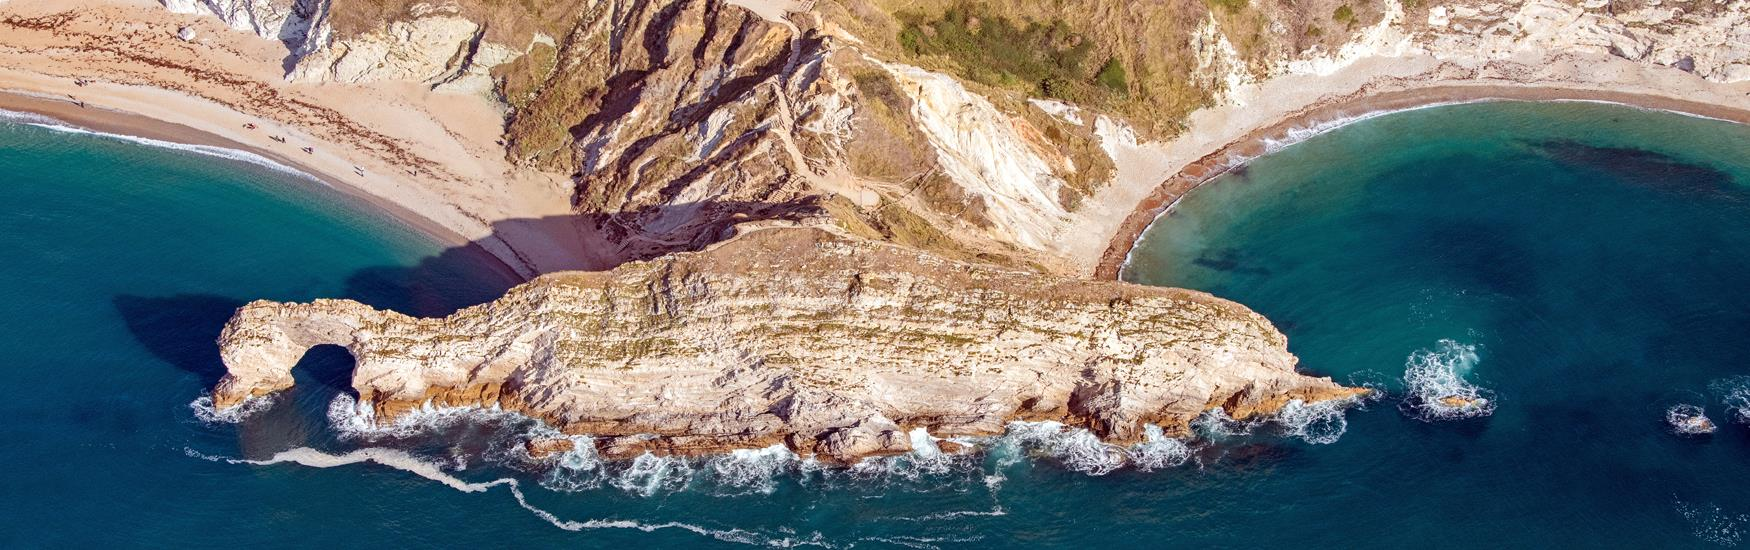 Dorset Jurassic Coastline including Durdle Door